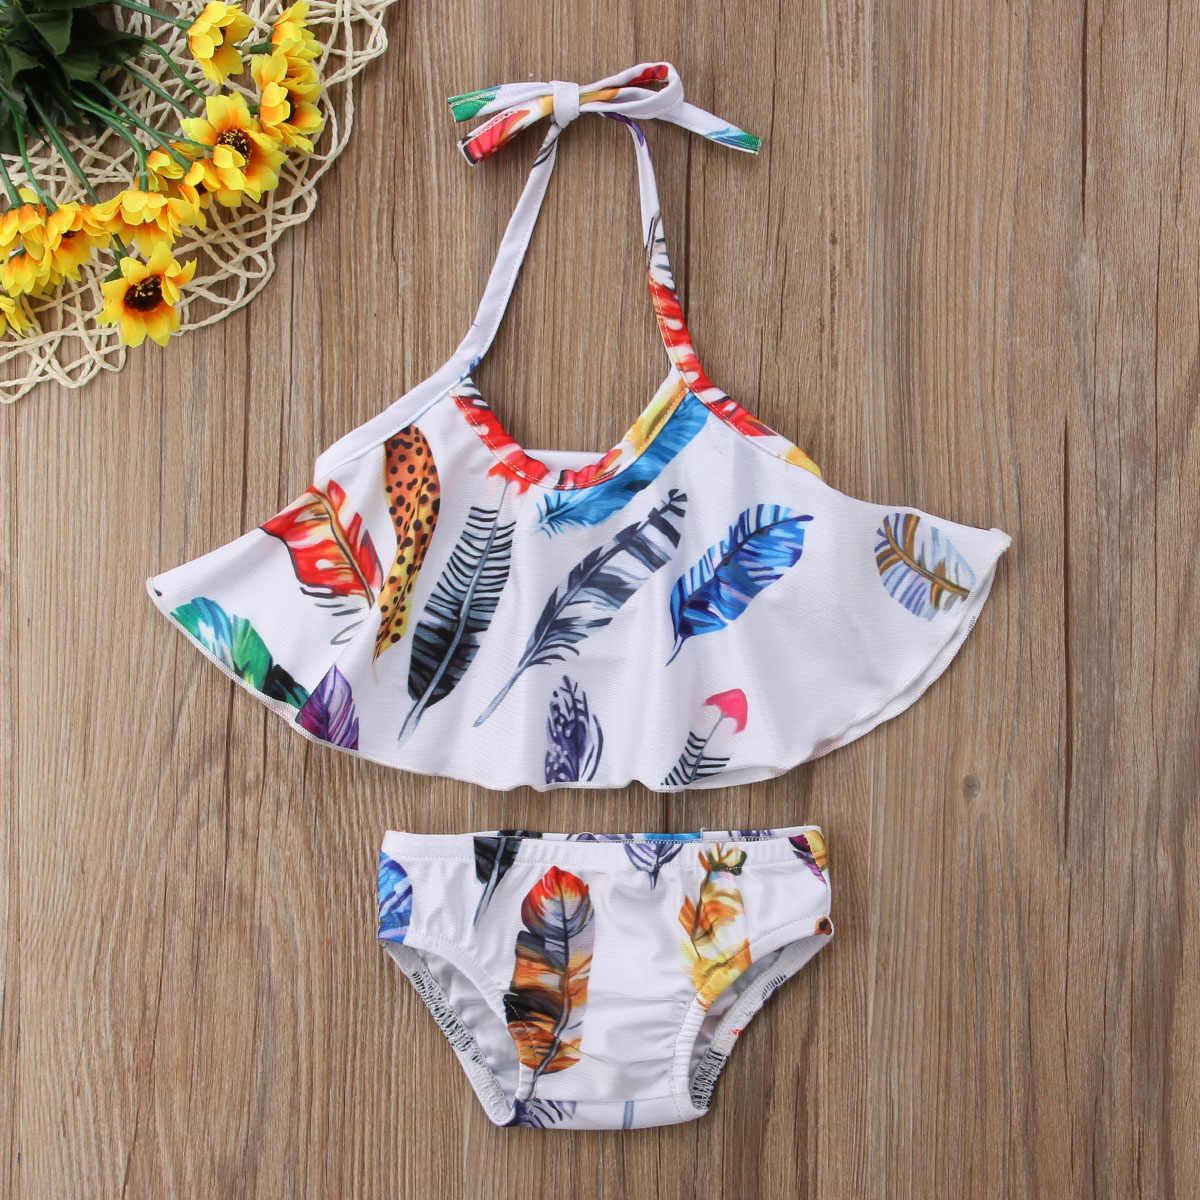 9c70c3b4633 Detail Feedback Questions about 2018 Summer Toddler Kids Baby Girls Feather  Print Swimwear Bikini Set Ruffle Bandage Backless Swimsuit Bathing Suit ...